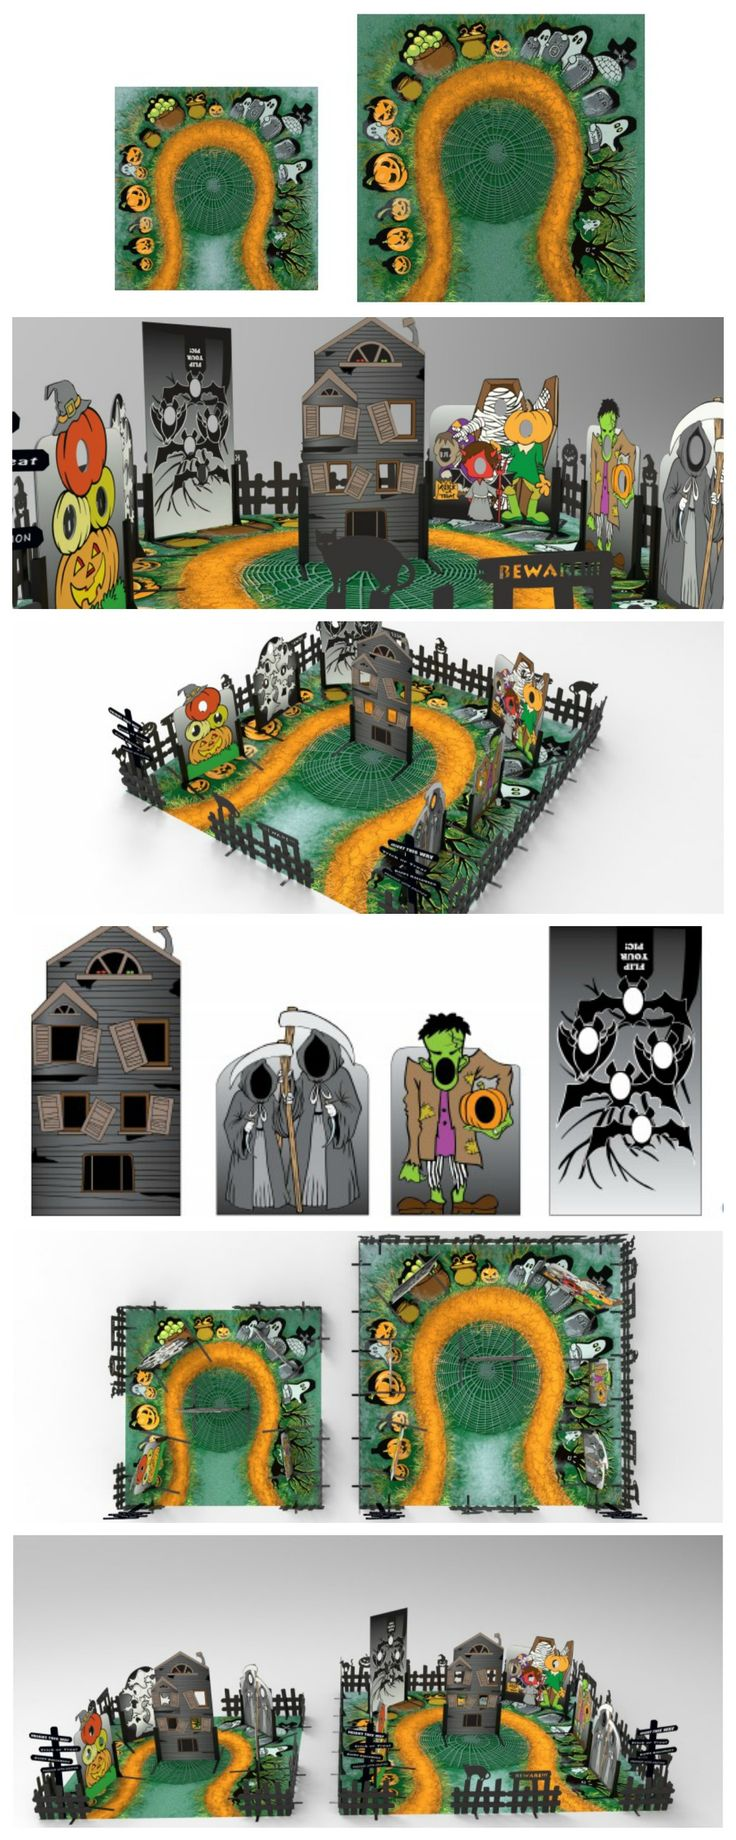 We created a Malloween Adventure for General Growth Properties. Here are the renderings that we designed.